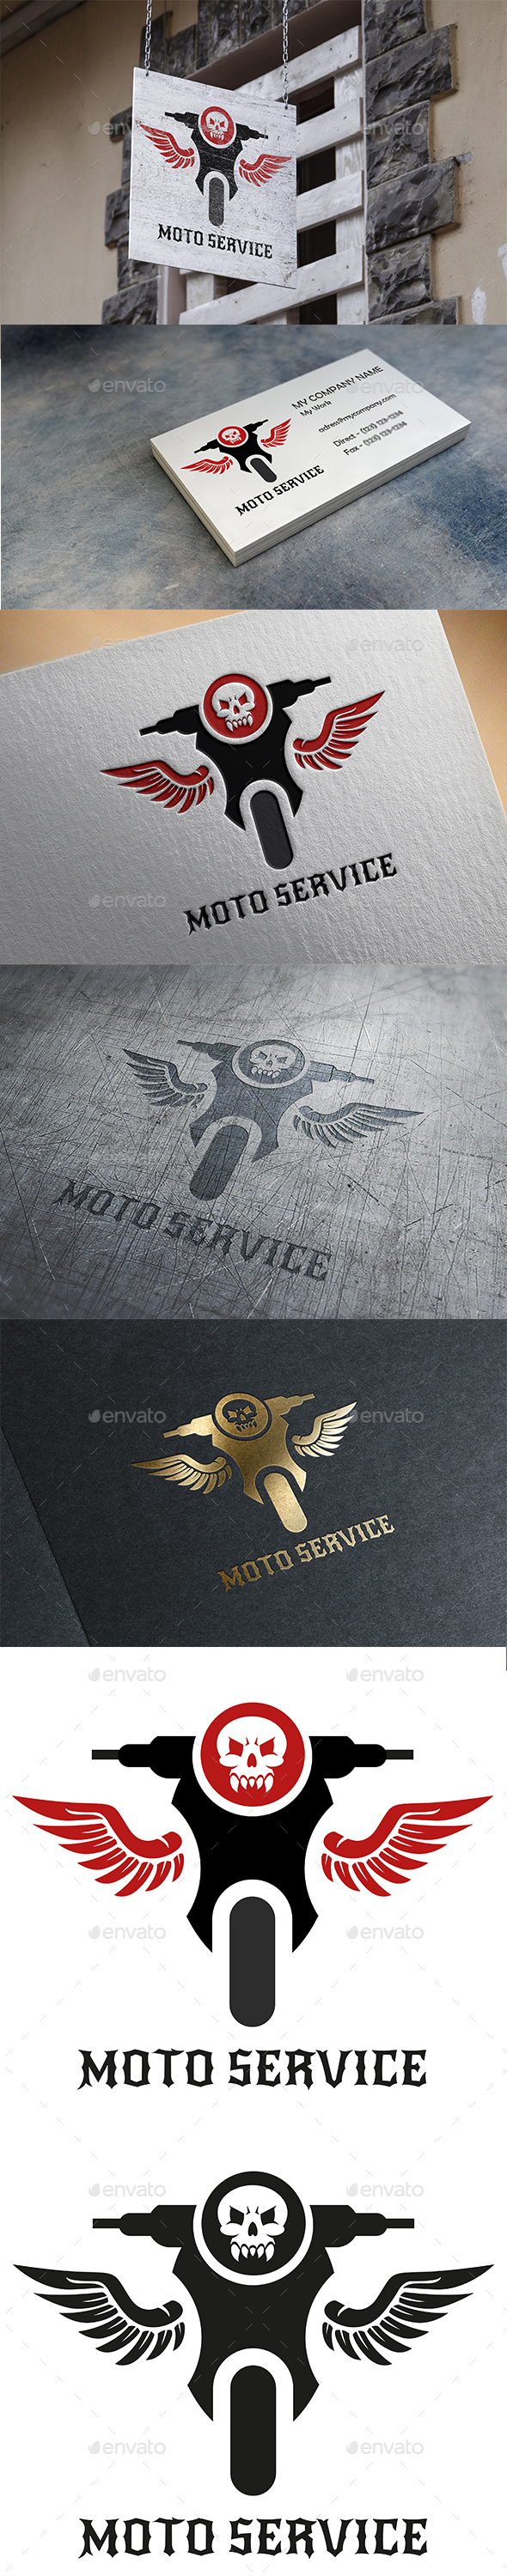 Moto Service Logo - Vector Abstract